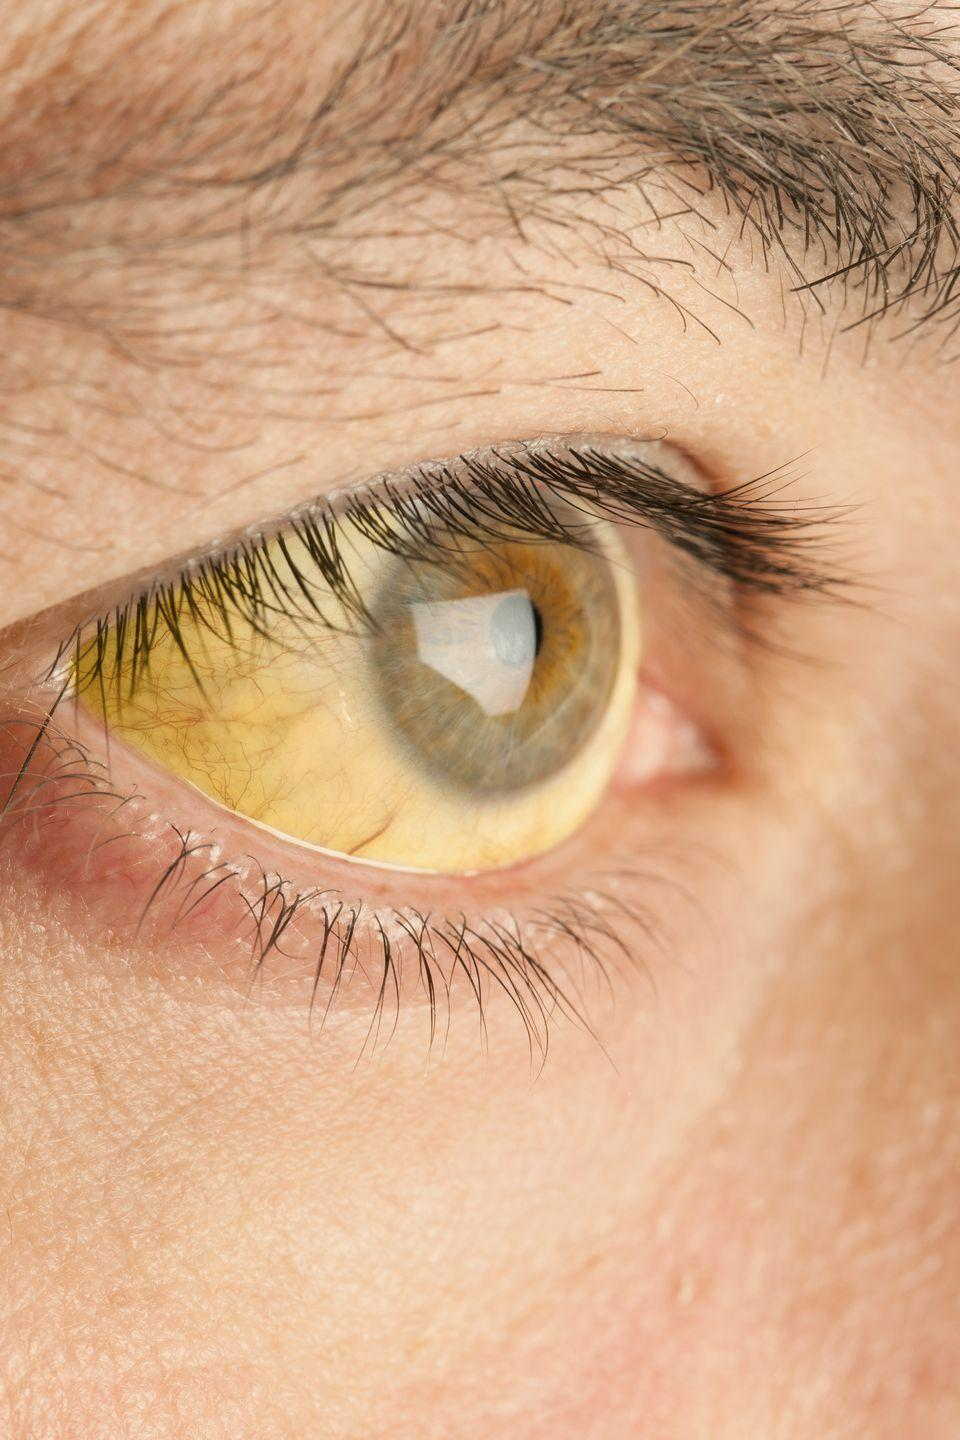 """<p>If the whites of your eyes are yellowing like old paper, it should come as no surprise that this is definitely a <a rel=""""nofollow noopener"""" href=""""https://www.womansday.com/health-fitness/womens-health/g2923/heart-attack-warning-signs/"""" target=""""_blank"""" data-ylk=""""slk:warning sign"""" class=""""link rapid-noclick-resp"""">warning sign</a> something is wrong in your body. The biggest contenders for culprit? Jaundice, a condition that occurs when there's too much bilirubin - a yellow compound formed from the breakdown of red blood cells - in your blood. If your liver can't filter the cells, bilirubin builds up and can cause your eyes and skin to turn yellow. It's pretty rare in adults (sometimes babies are born with jaundice), but much of the time it's due to an infection like hepatitis, alcohol-related liver disease, or something blocking your bile ducts like gallstones or cancer.<br></p>"""